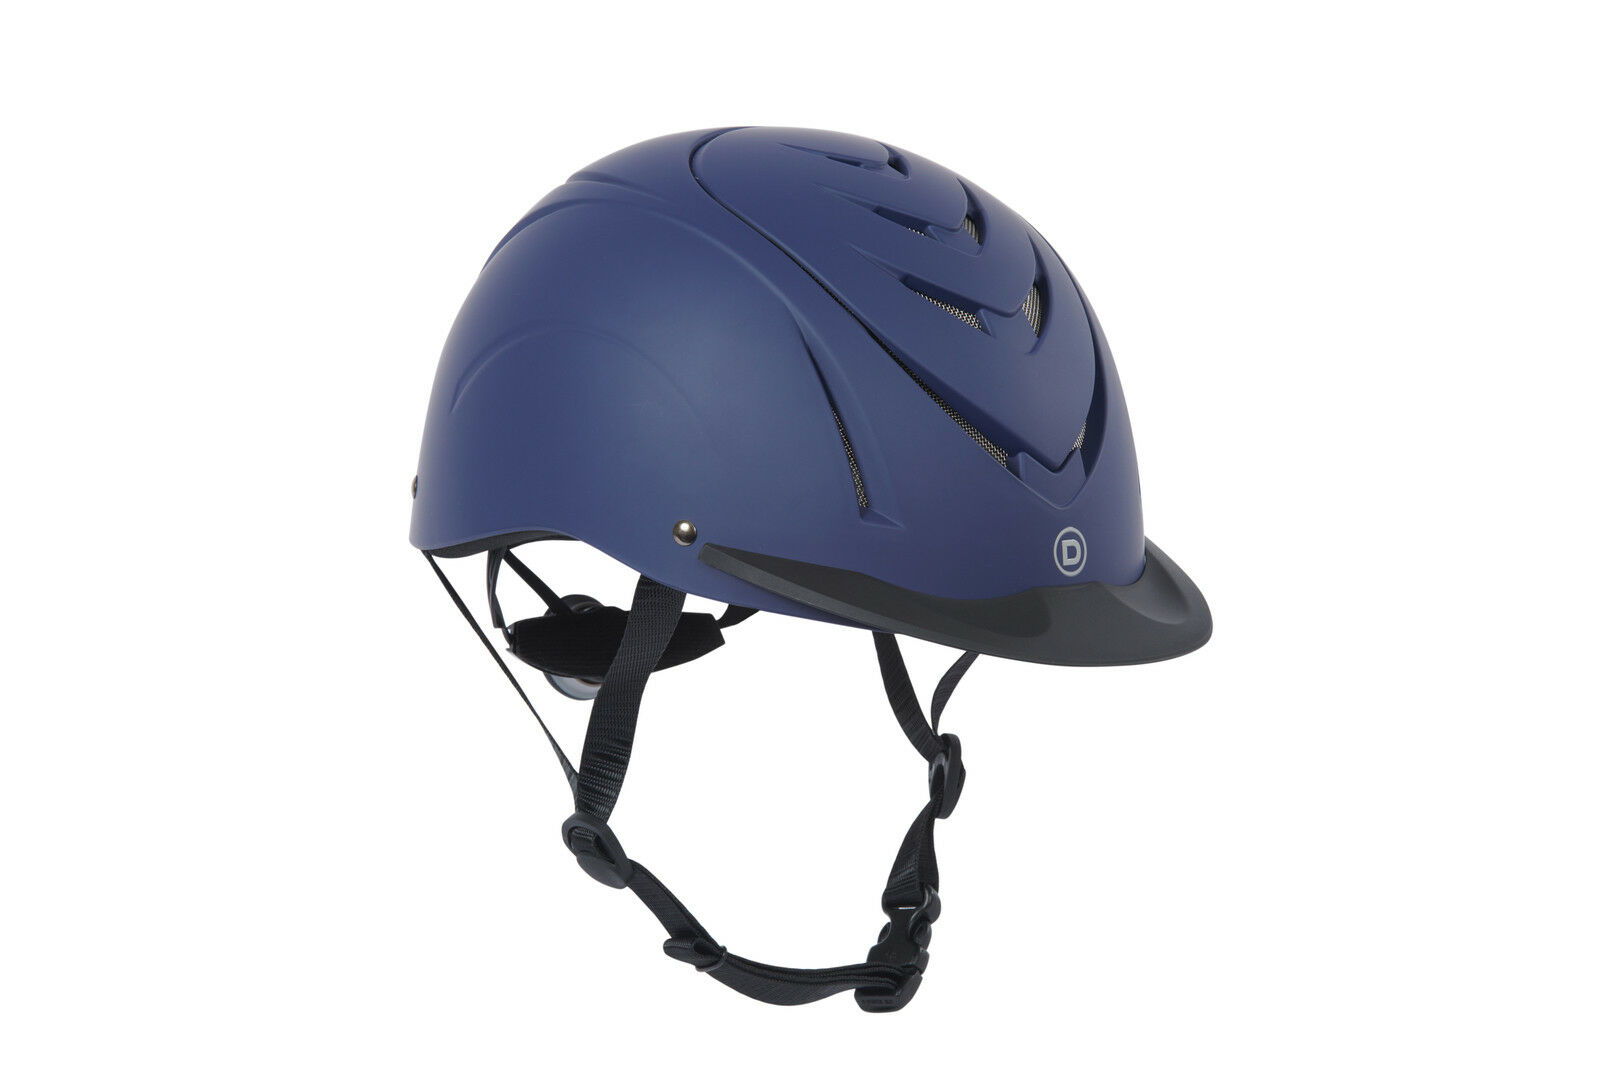 Dublin Chevron Riding Helmet with Dial Adjustment and Multiple Vents